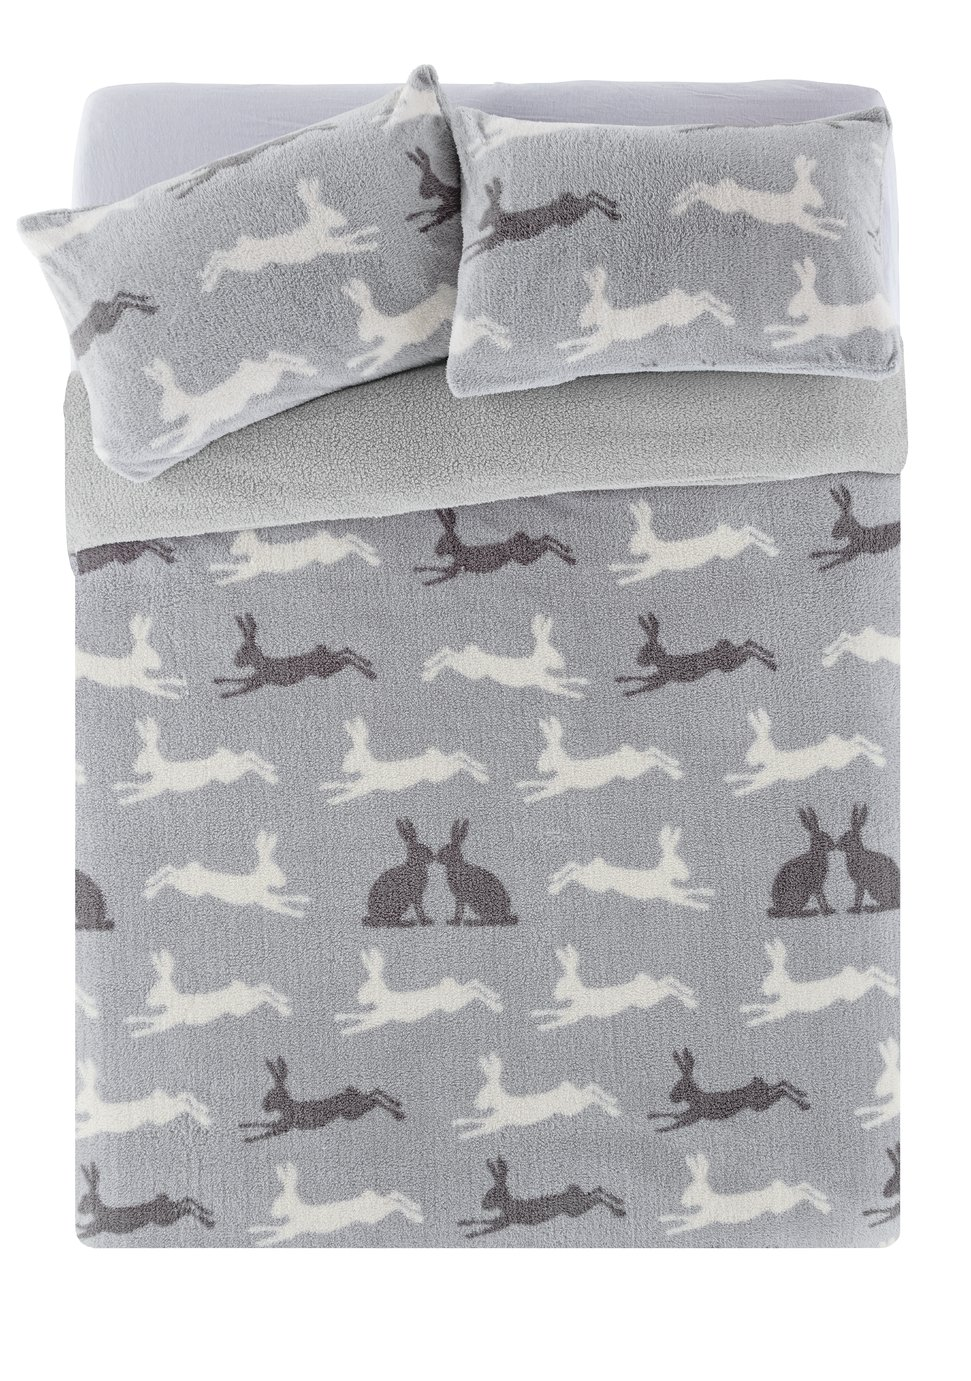 Argos Home Fleece Hare Bedding Set - Superking